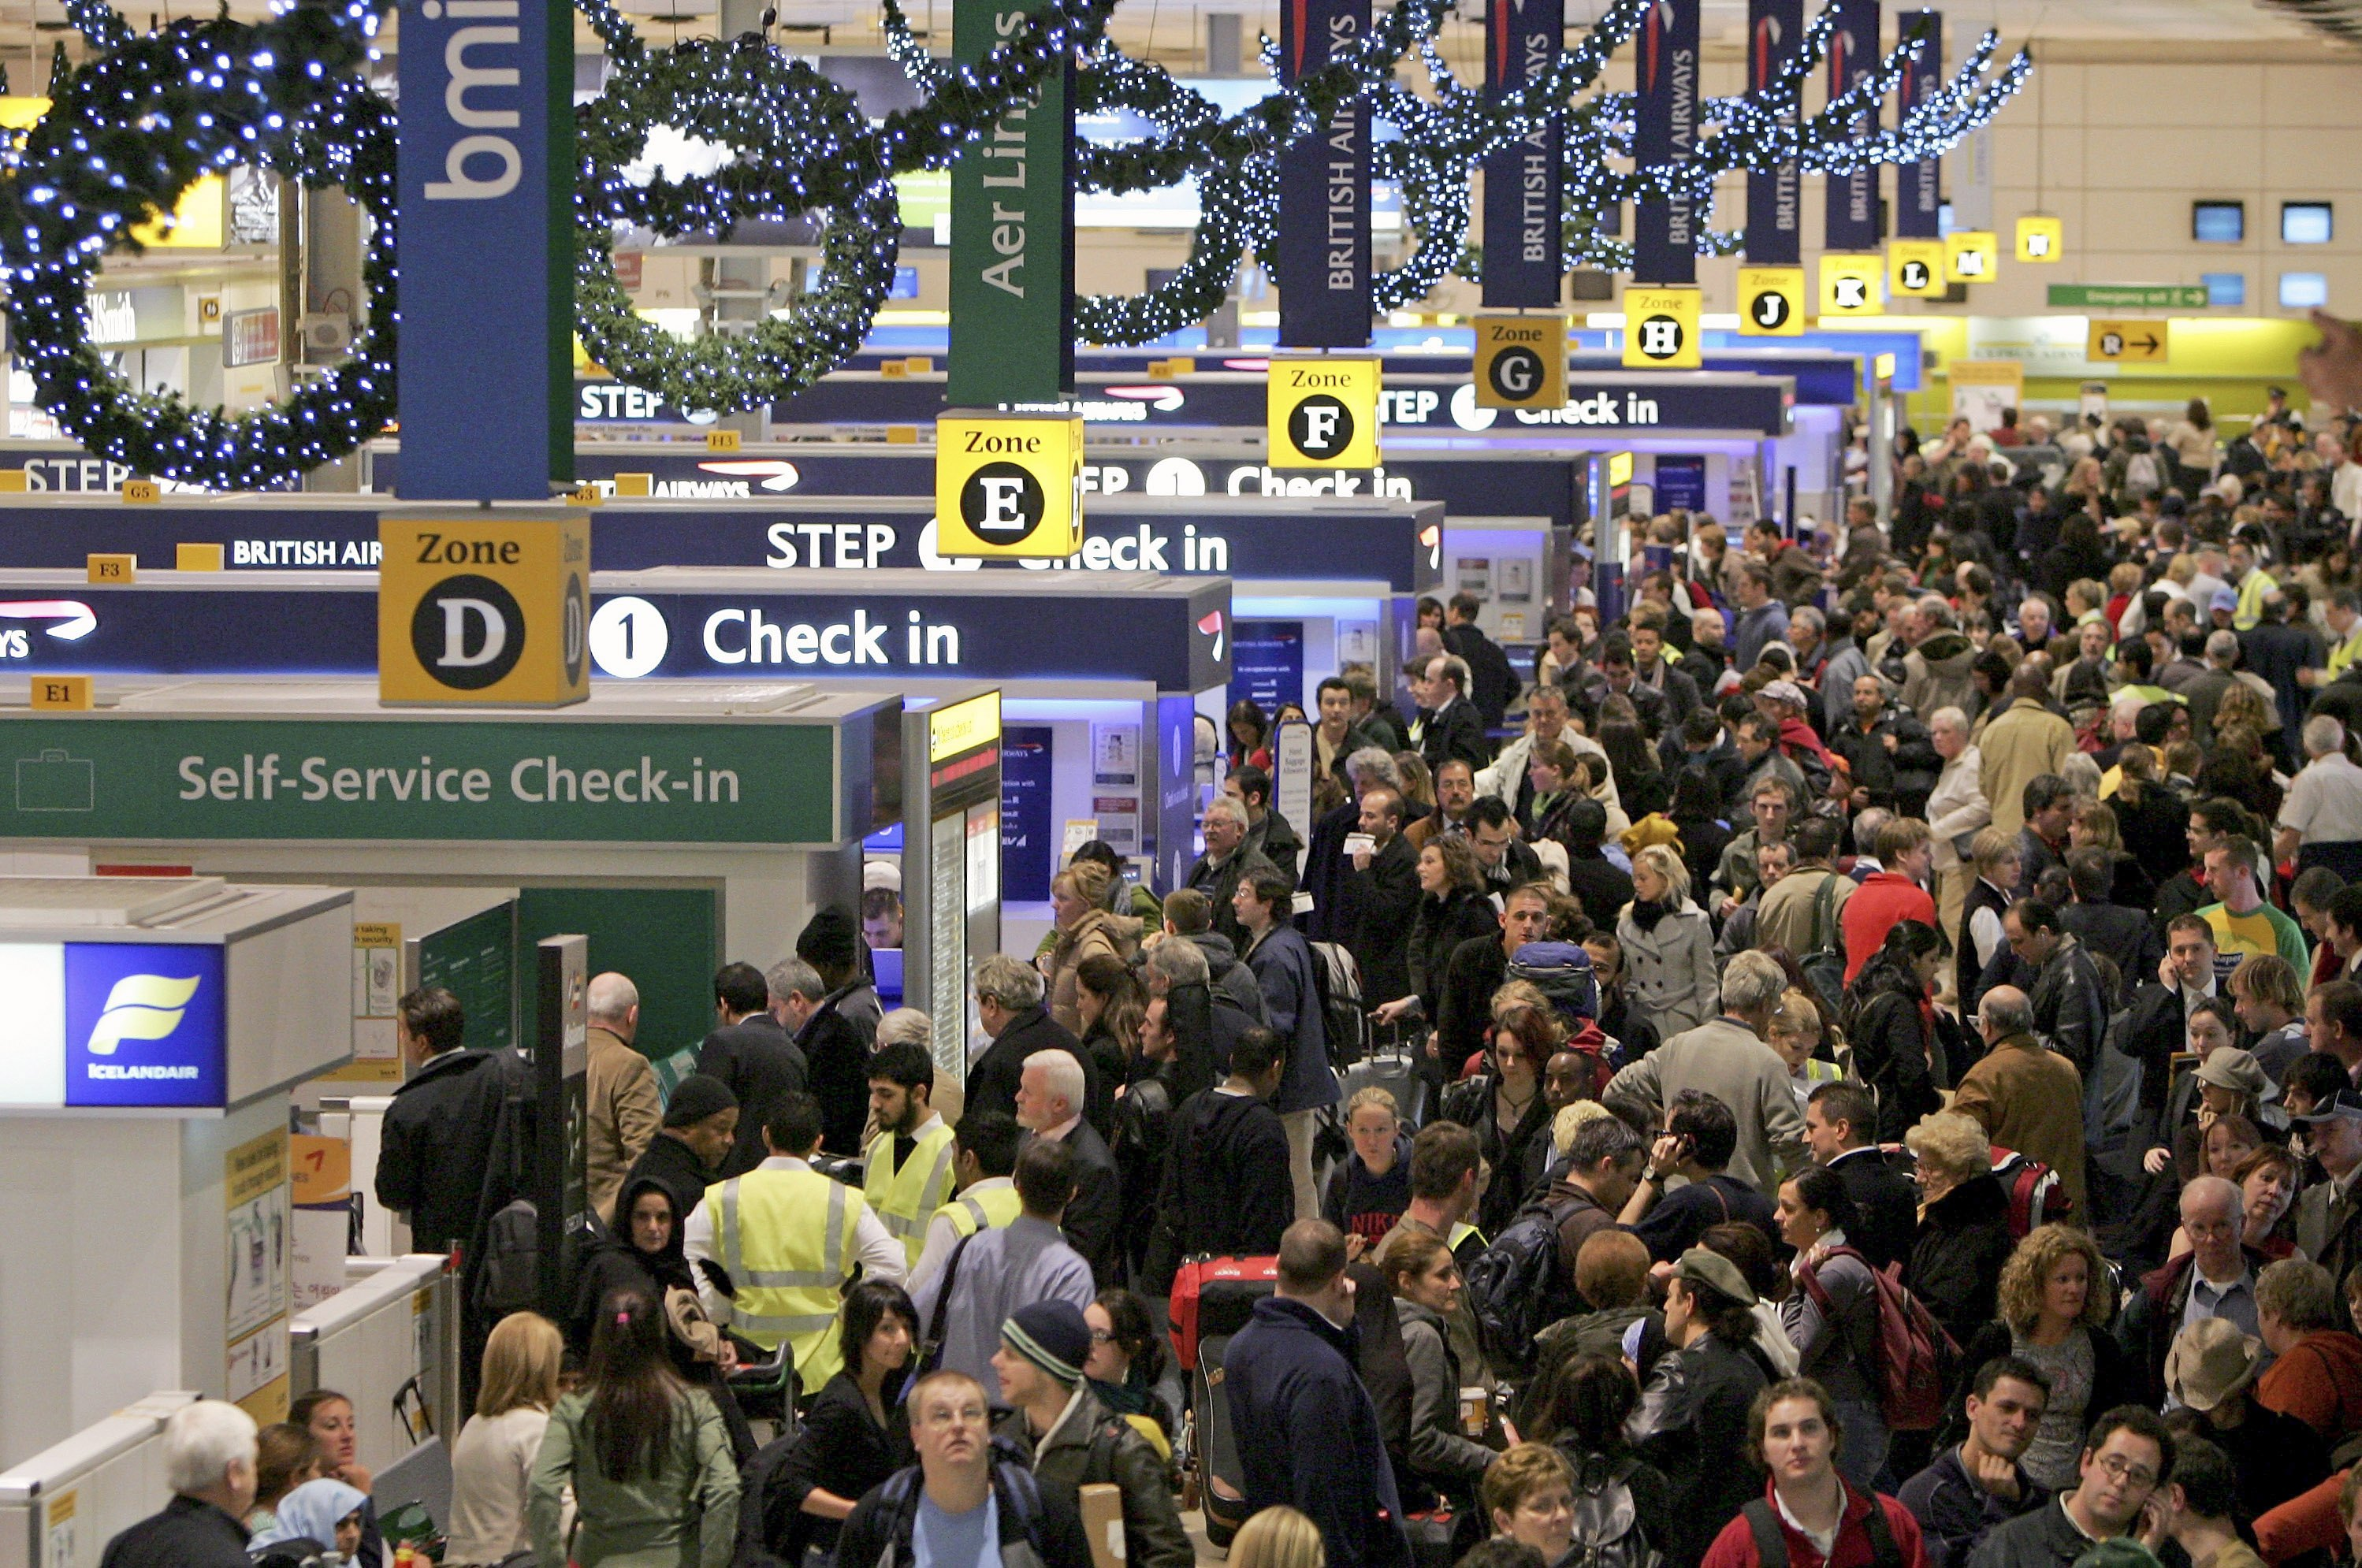 Uh-Oh! Your Thanksgiving Flight is About to Get More Crowded